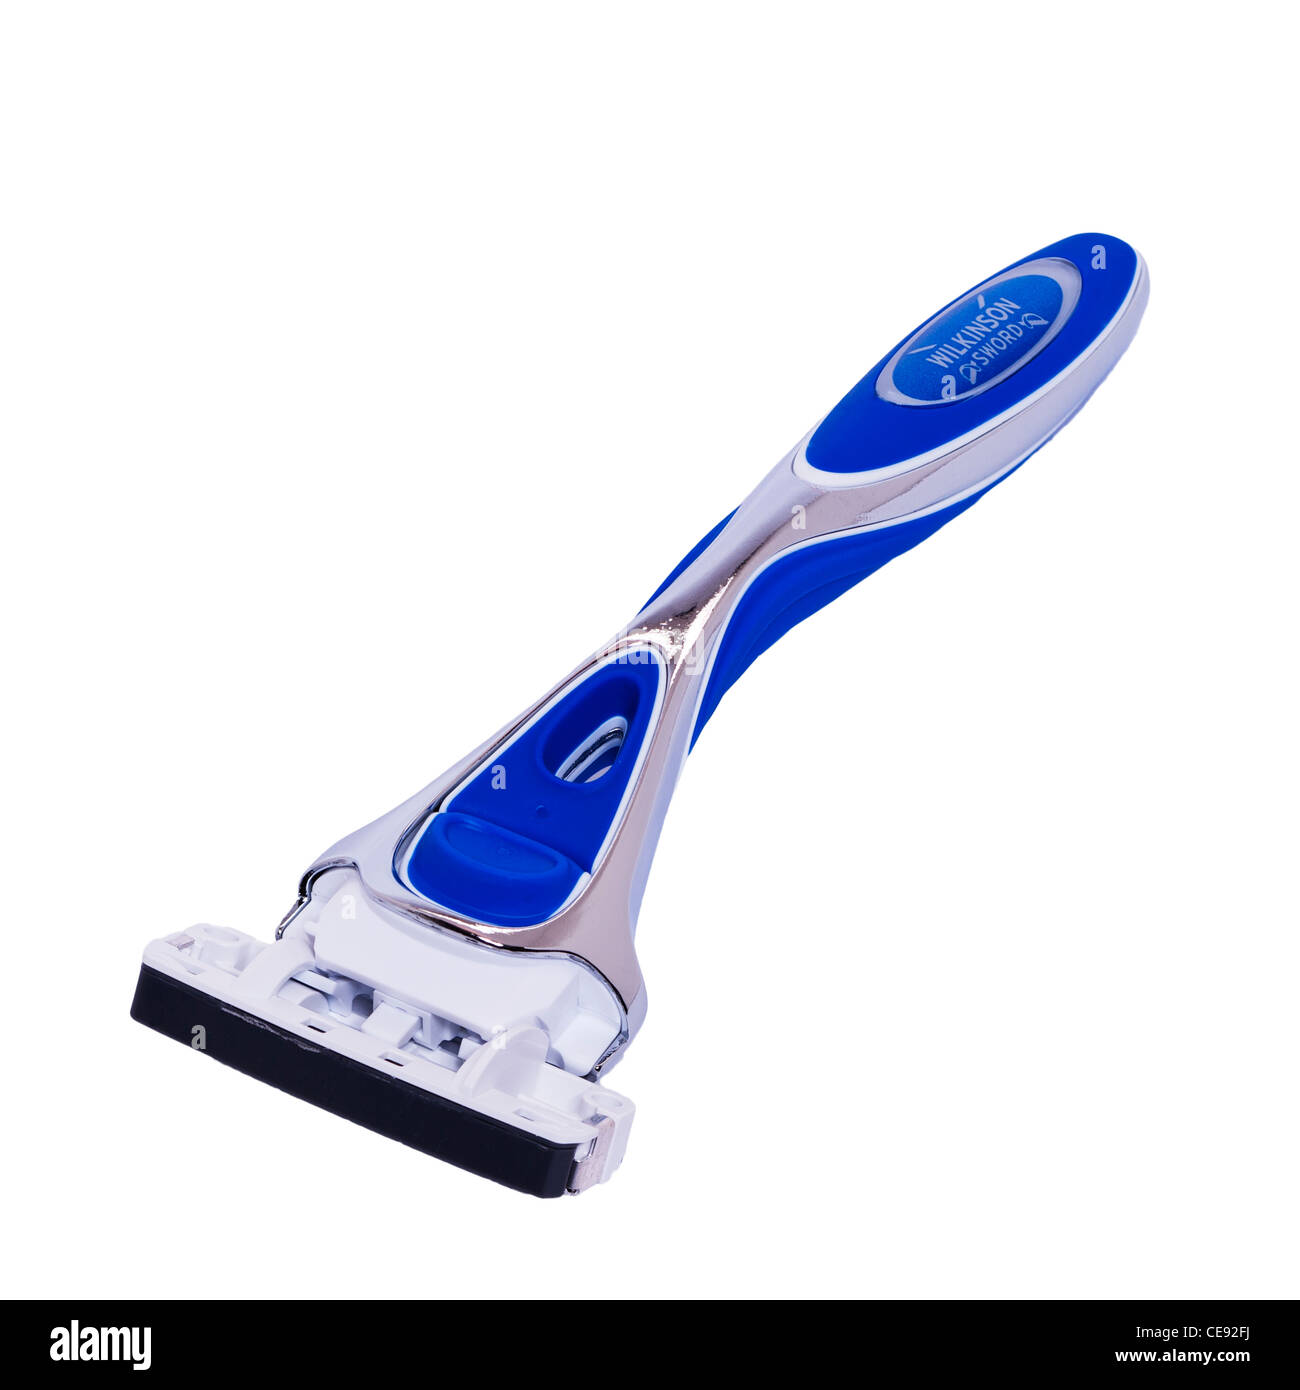 A Wilkinson Sword razor for men on a white background - Stock Image